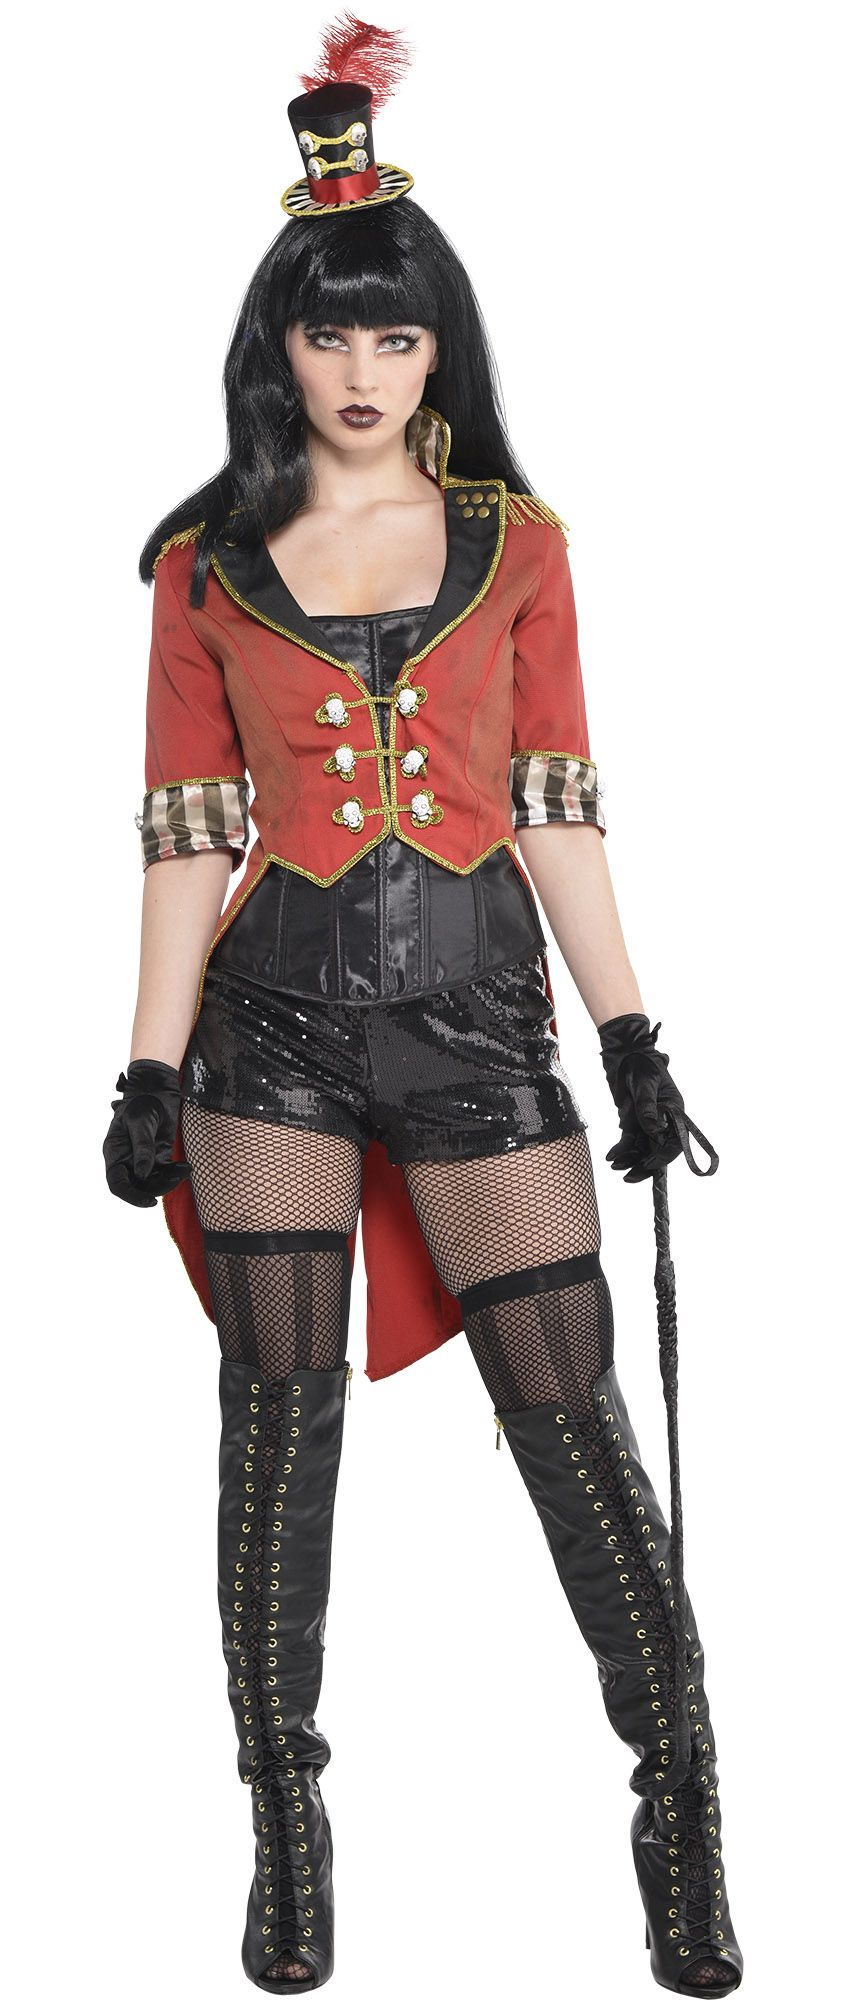 Create Your Own Look - Women's Ringmaster #1